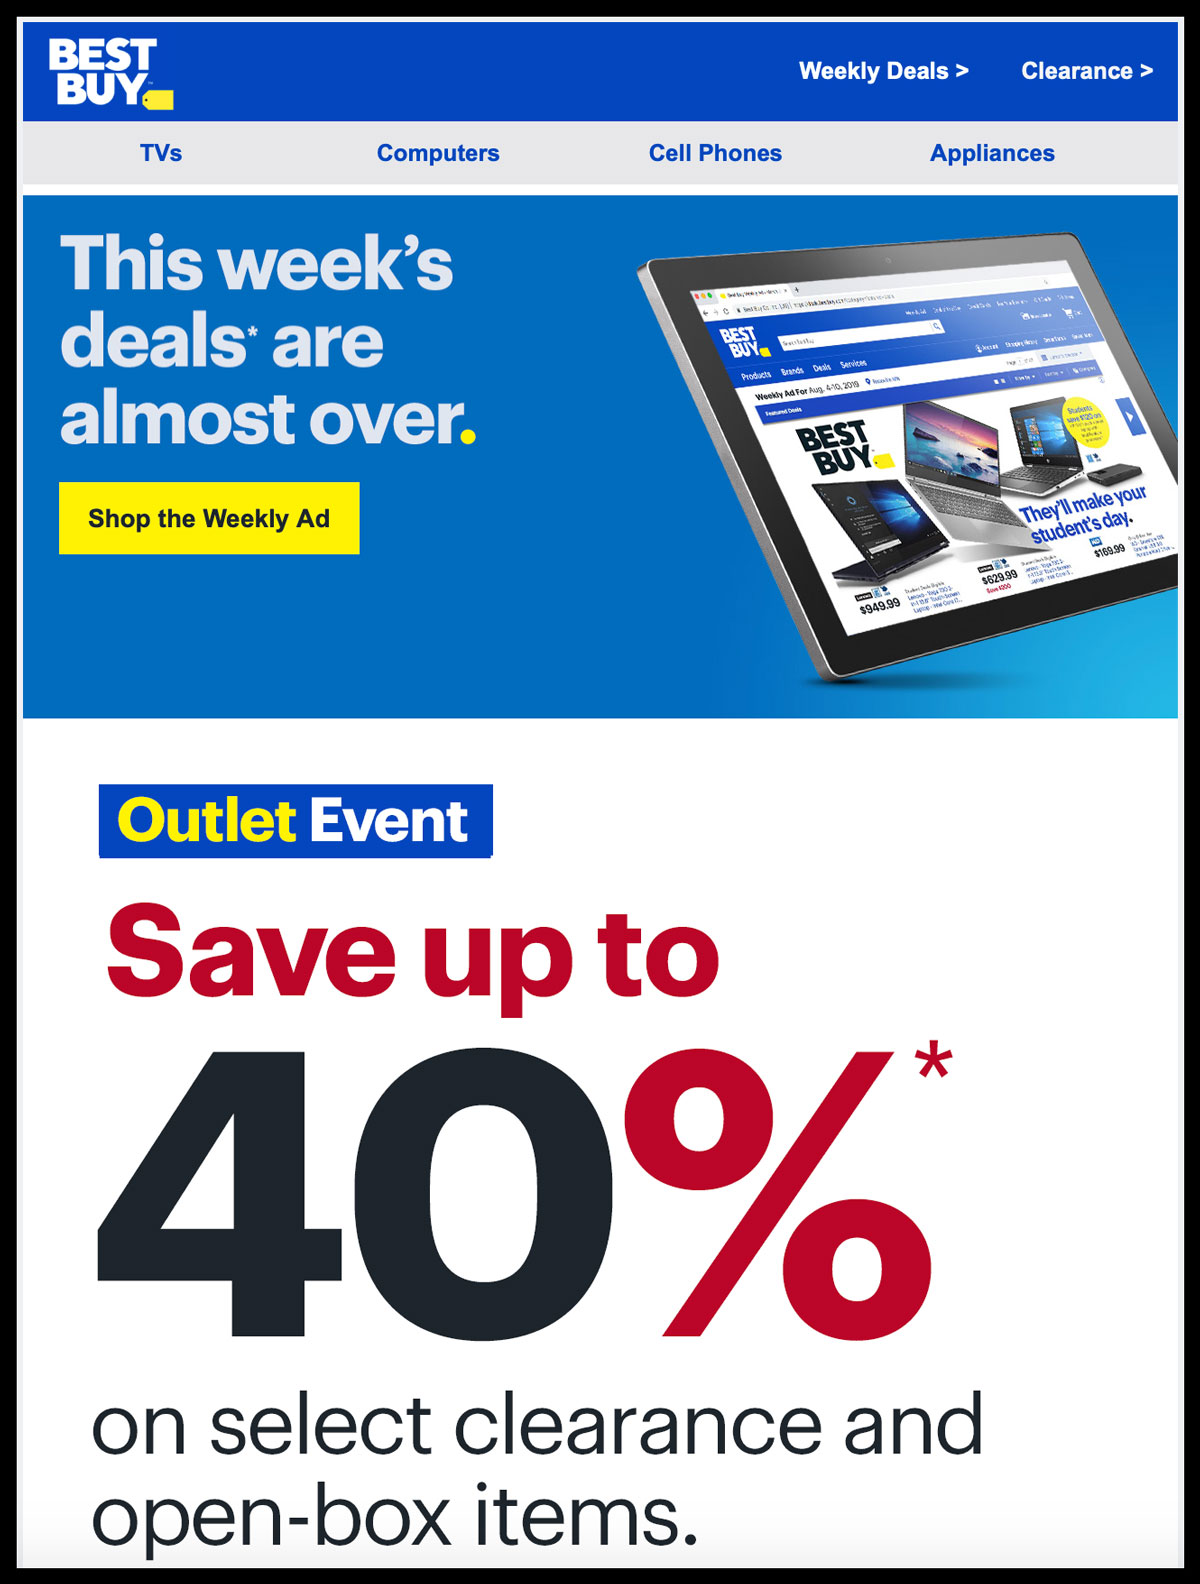 Image of Best Buy promotional email